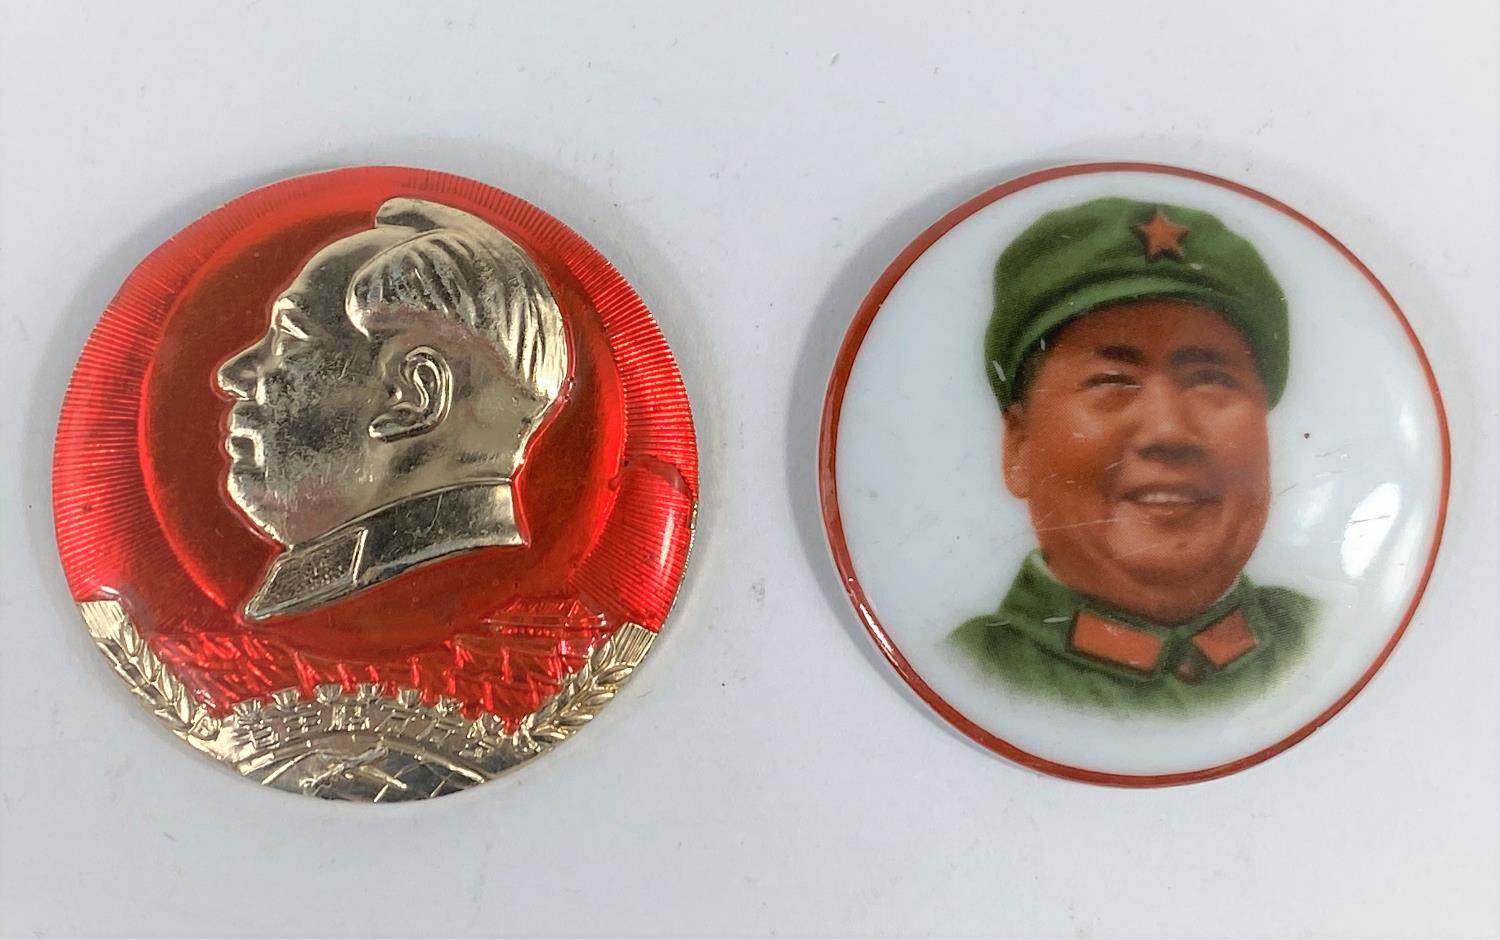 A Chinese porcelain circular brooch with colour image of Mao Zedong, post 1949, 45 mm, inscription